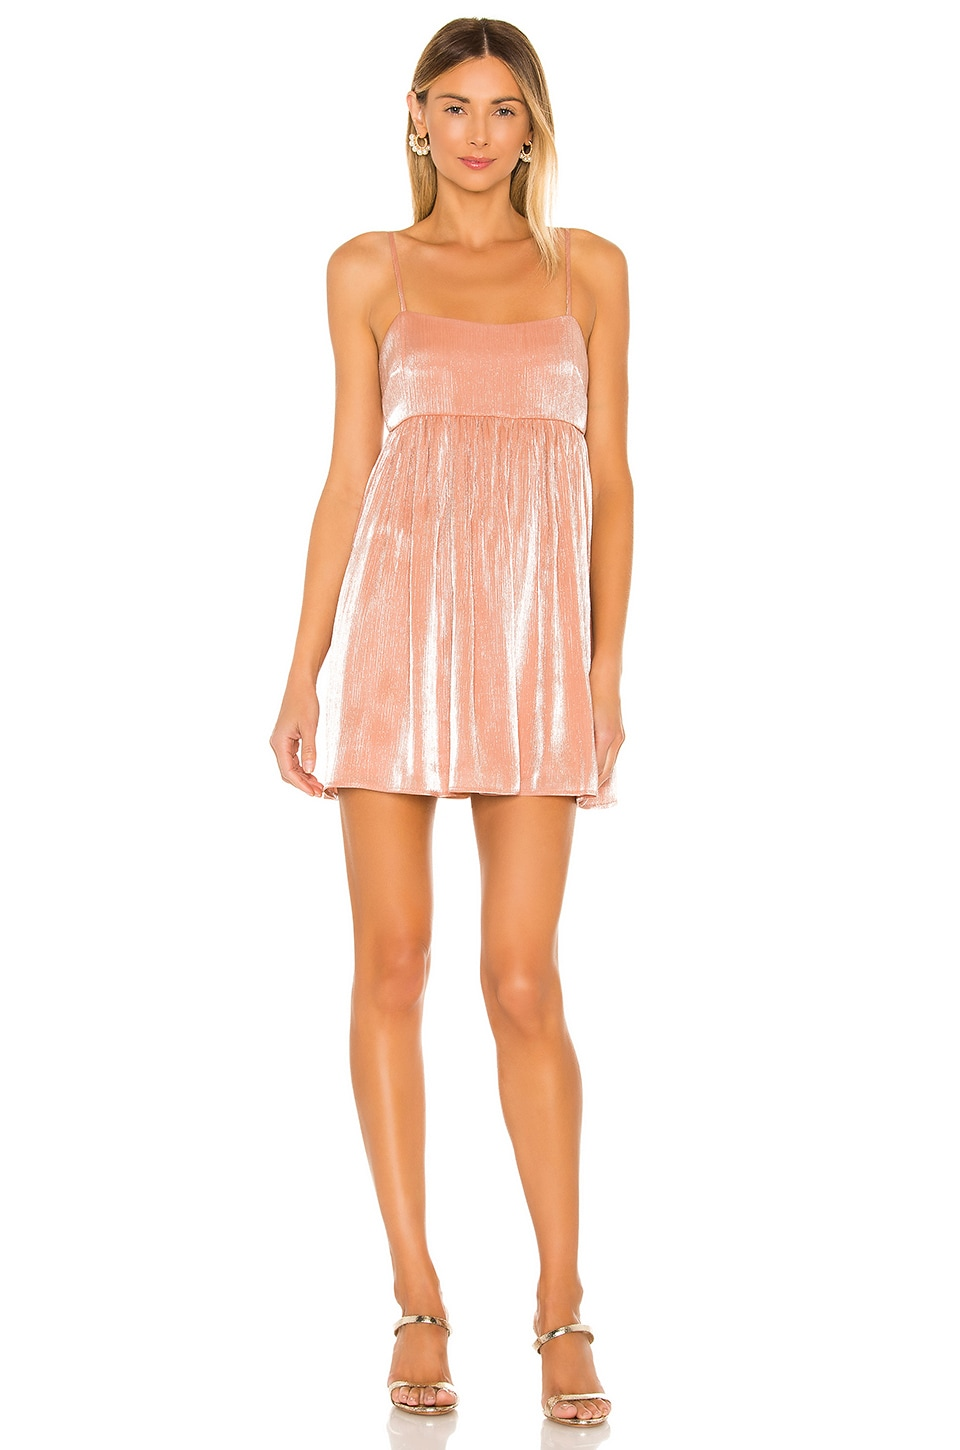 Lovers + Friends Davina Mini Dress in Peach Pink